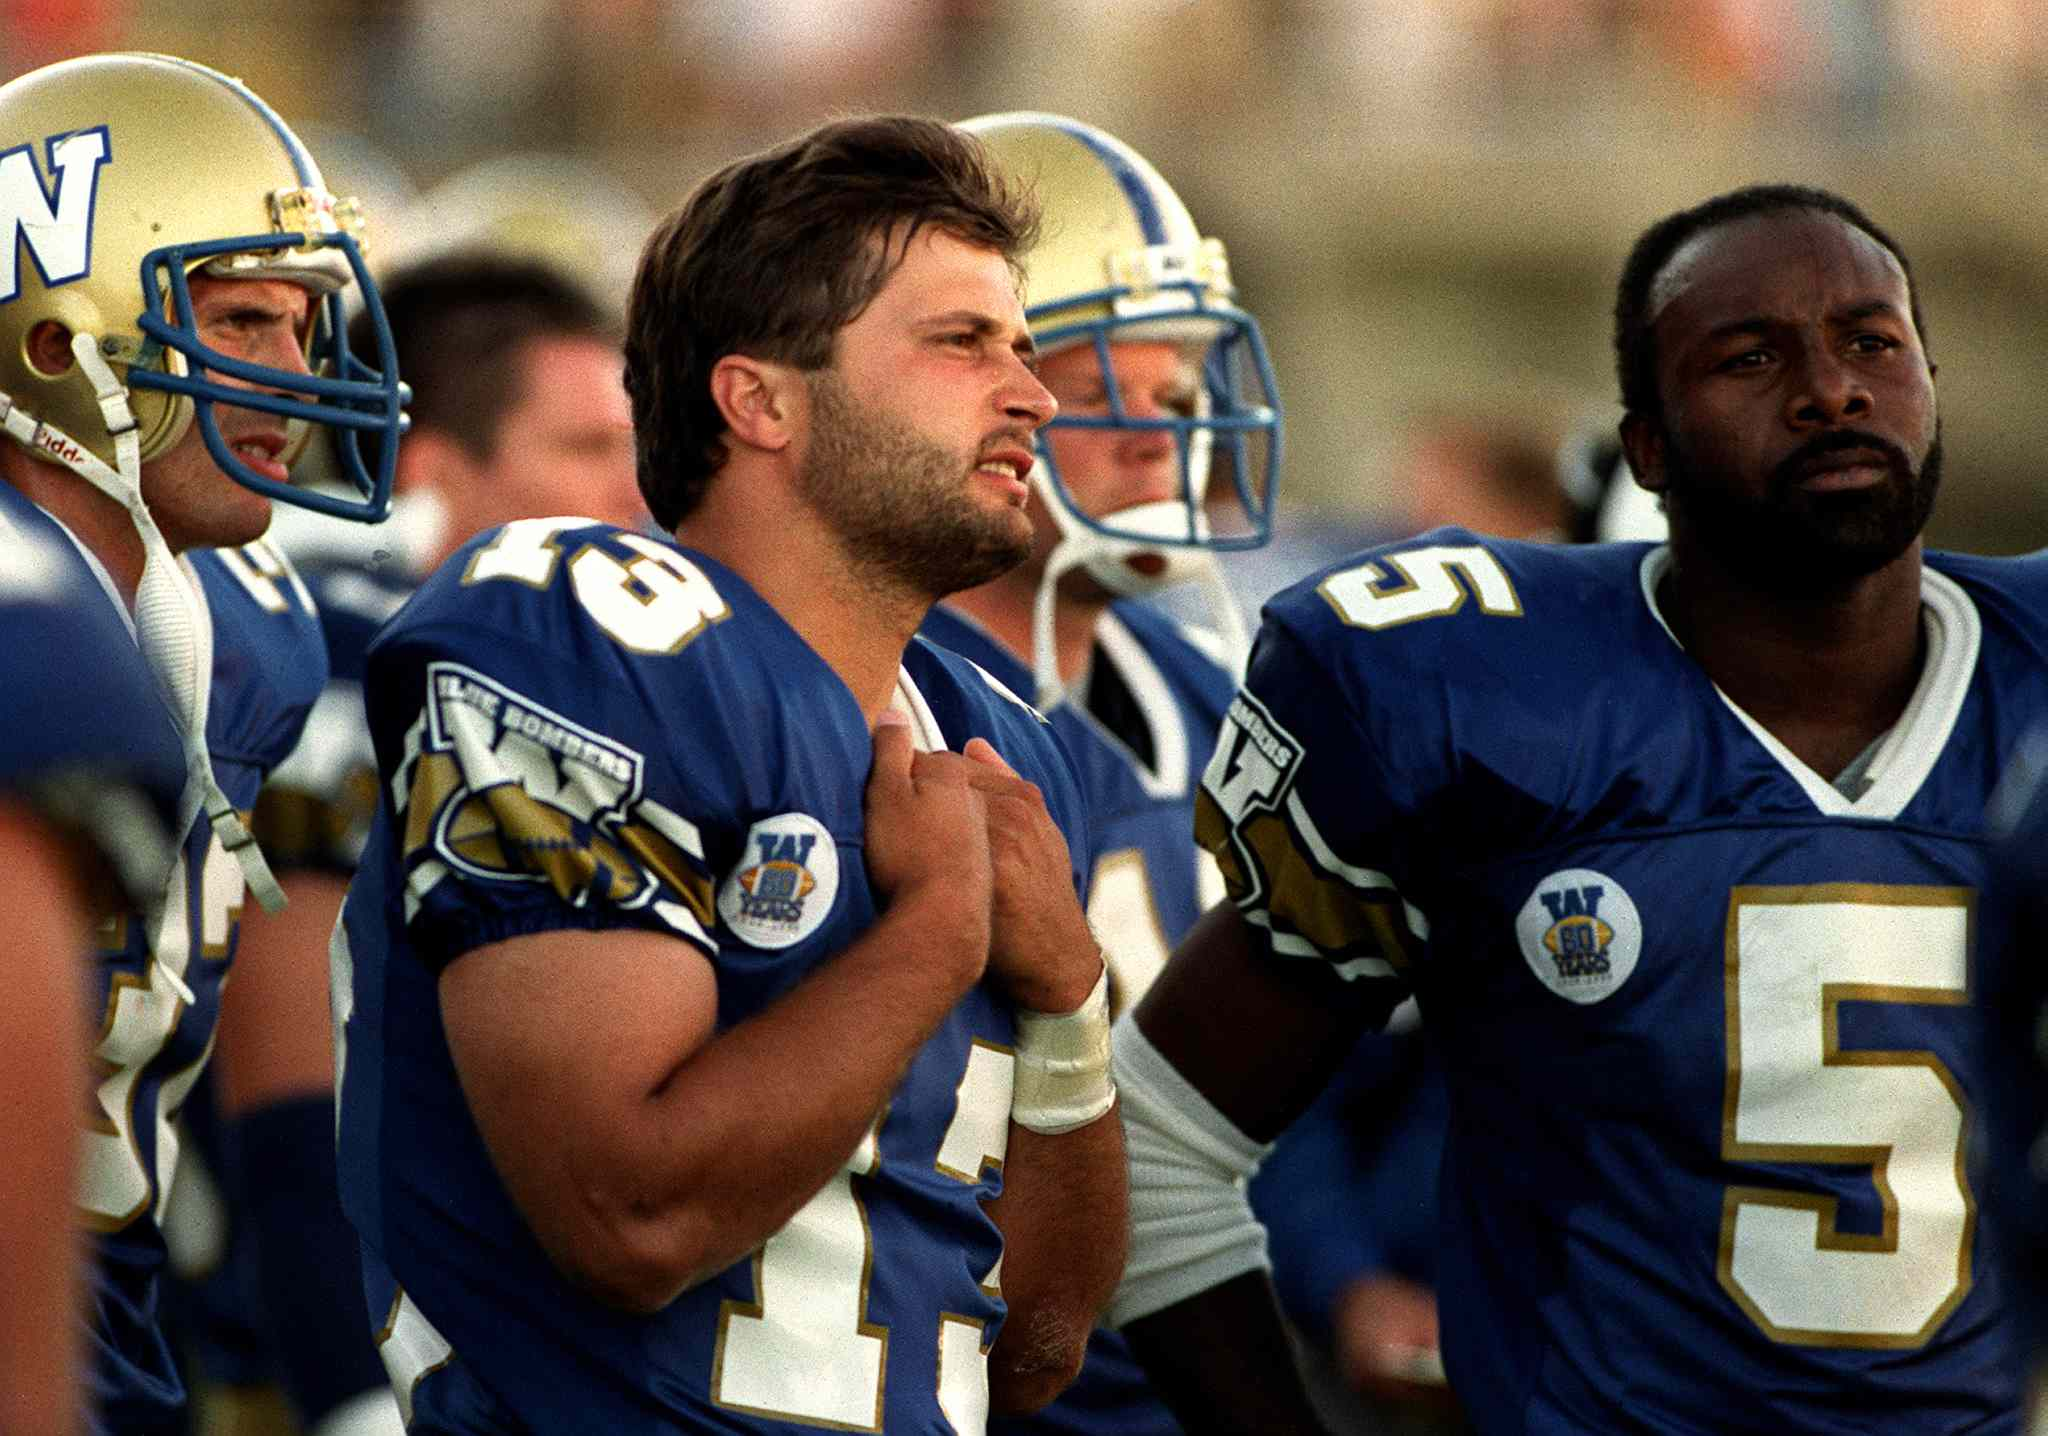 Blue Bomber QB Tom Burgess and RB Tim Jessie  in pre-season game. Burgess played two seasons (1990-91) and won a Grey Cup  with the Bombers.